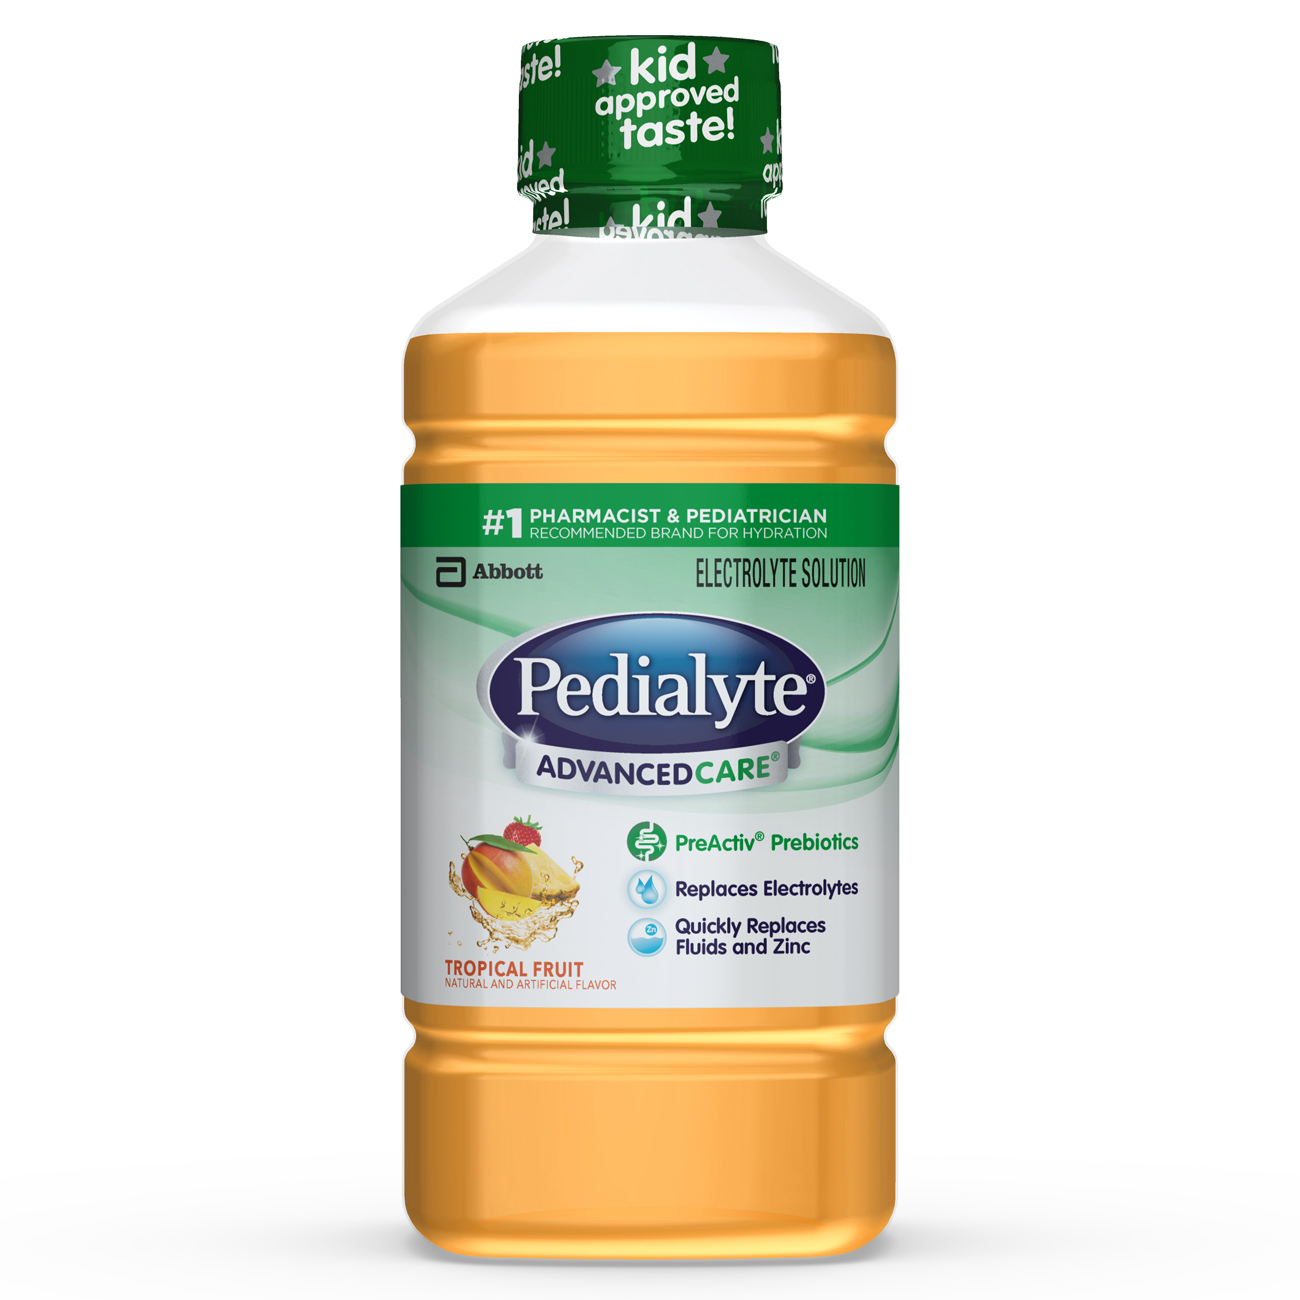 Pedialyte Advance Care Oral Electrolyte Solution, Tropical Fruit, 1 Liter